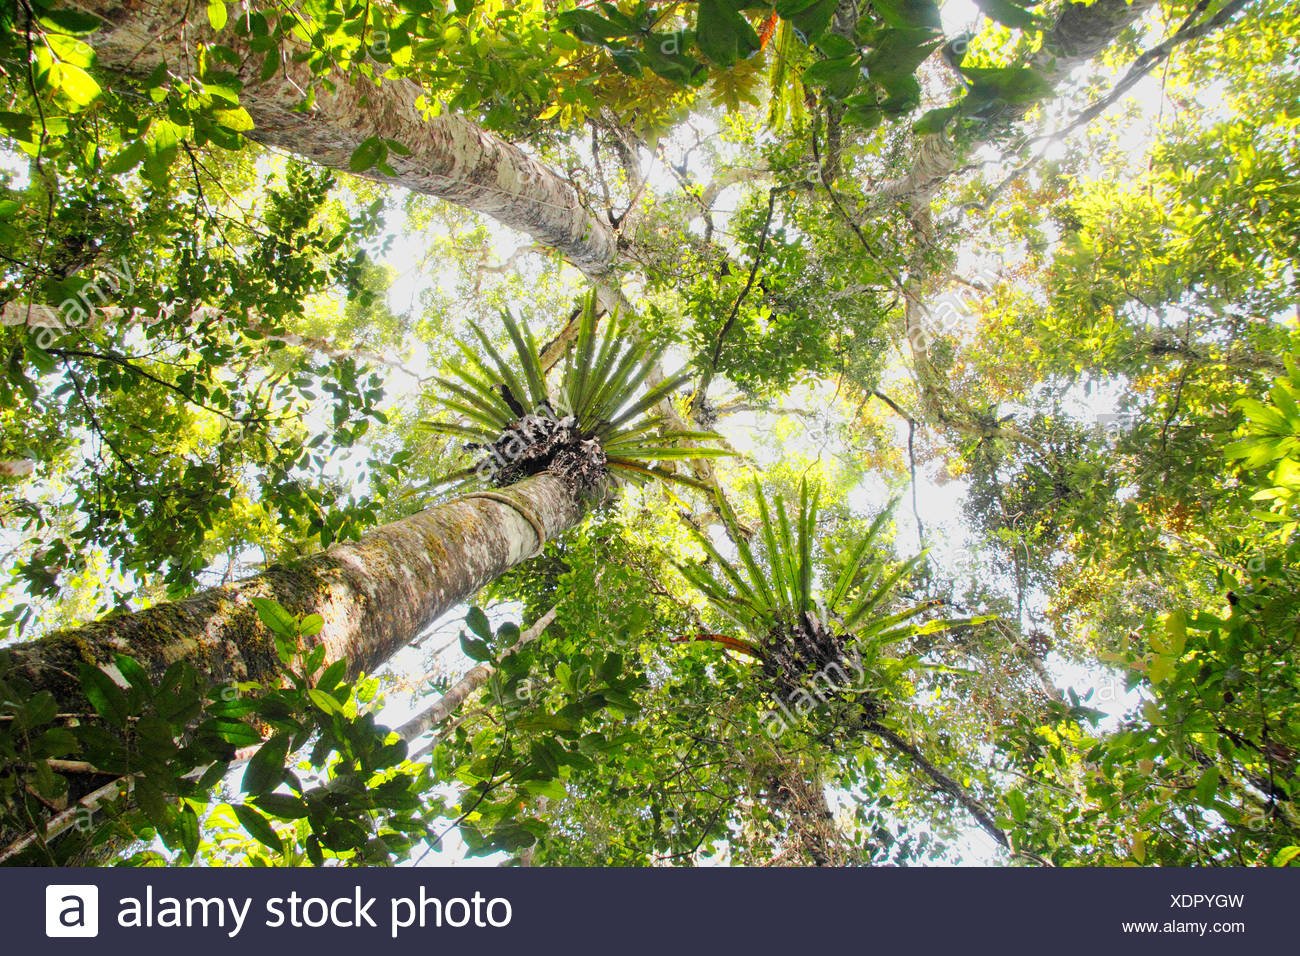 view to the treetops of the topical rainforest, Madagascar, Mantadia Andasibe National Park - Stock Image